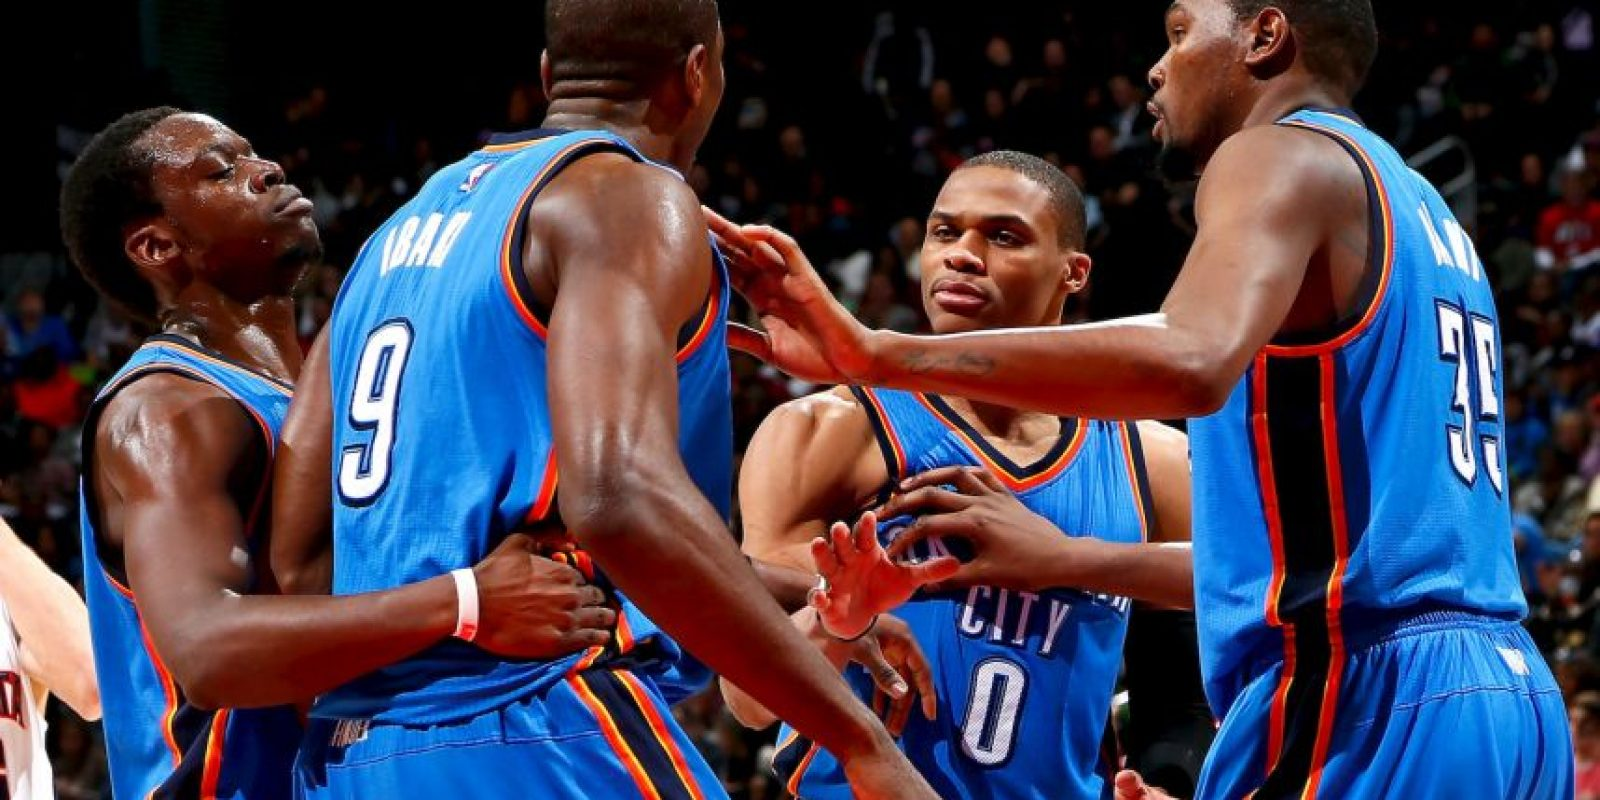 3. Oklahoma City Thunder, en busca del resurgimiento Foto: Getty images